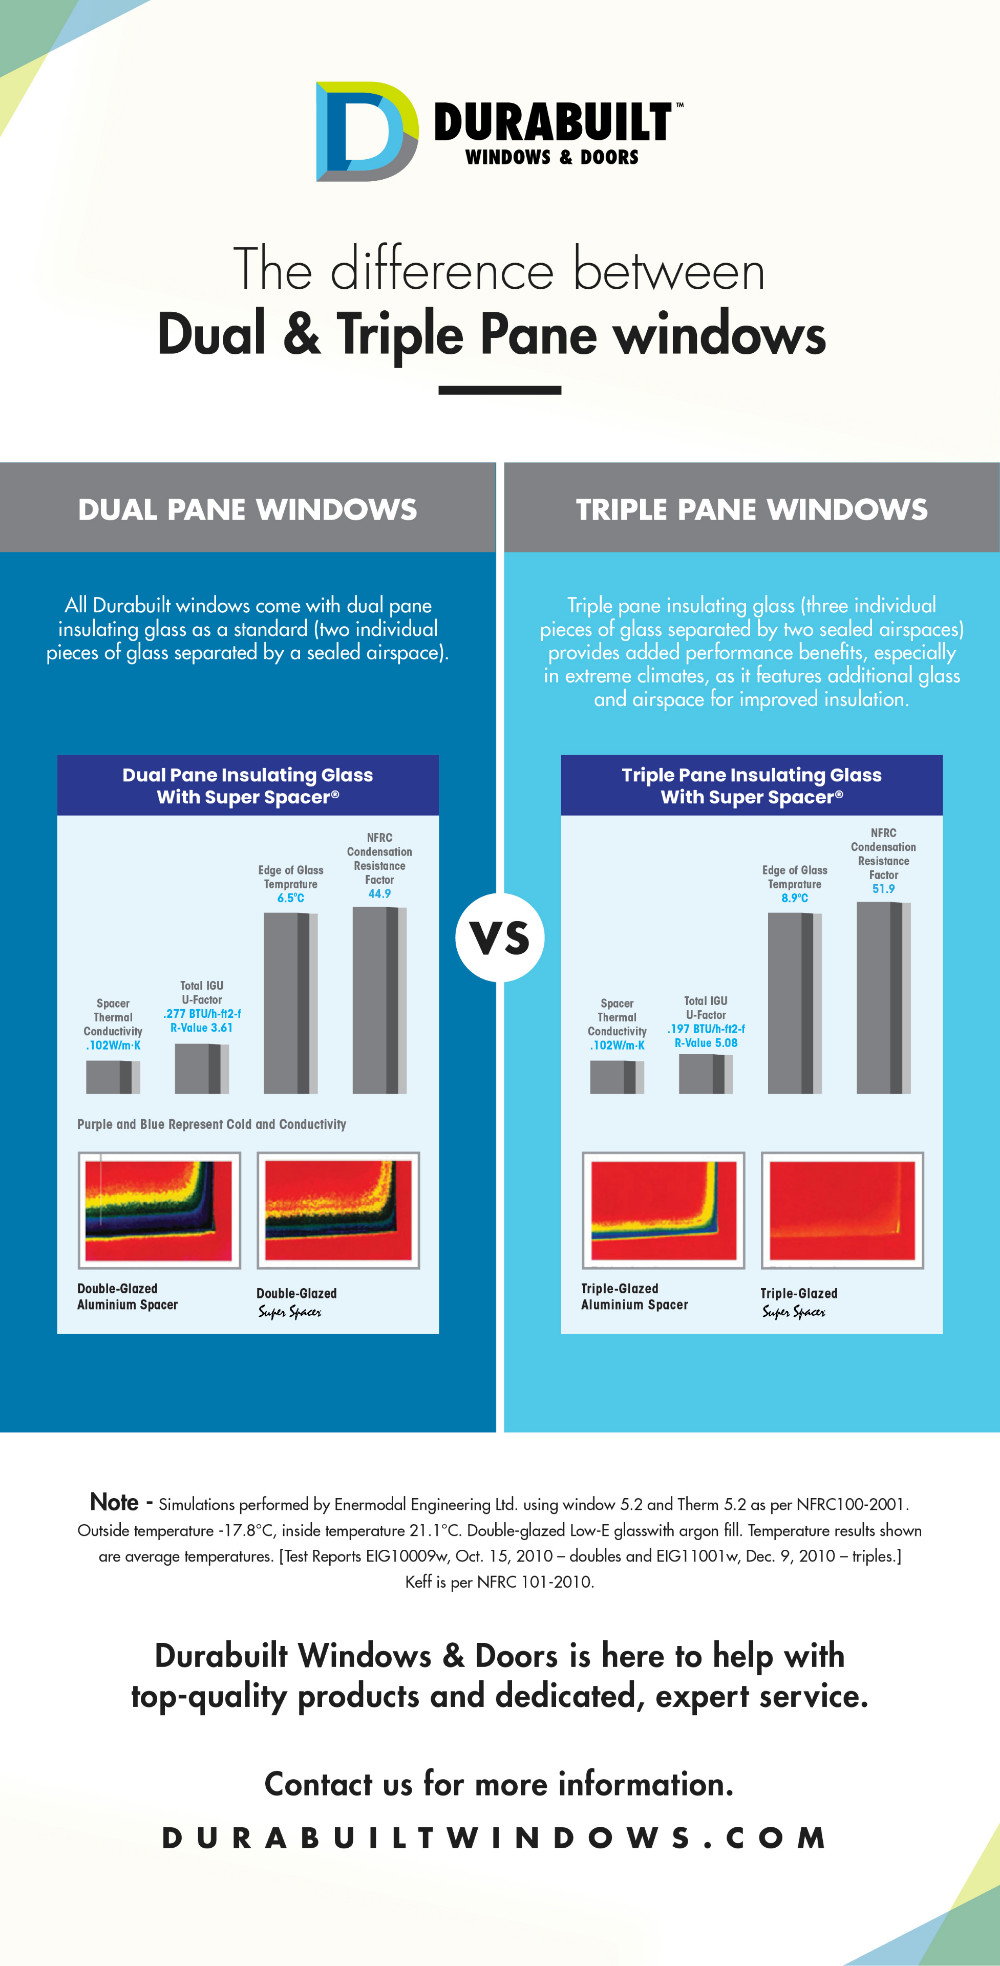 The Difference Between Dual & Triple Pane Windows